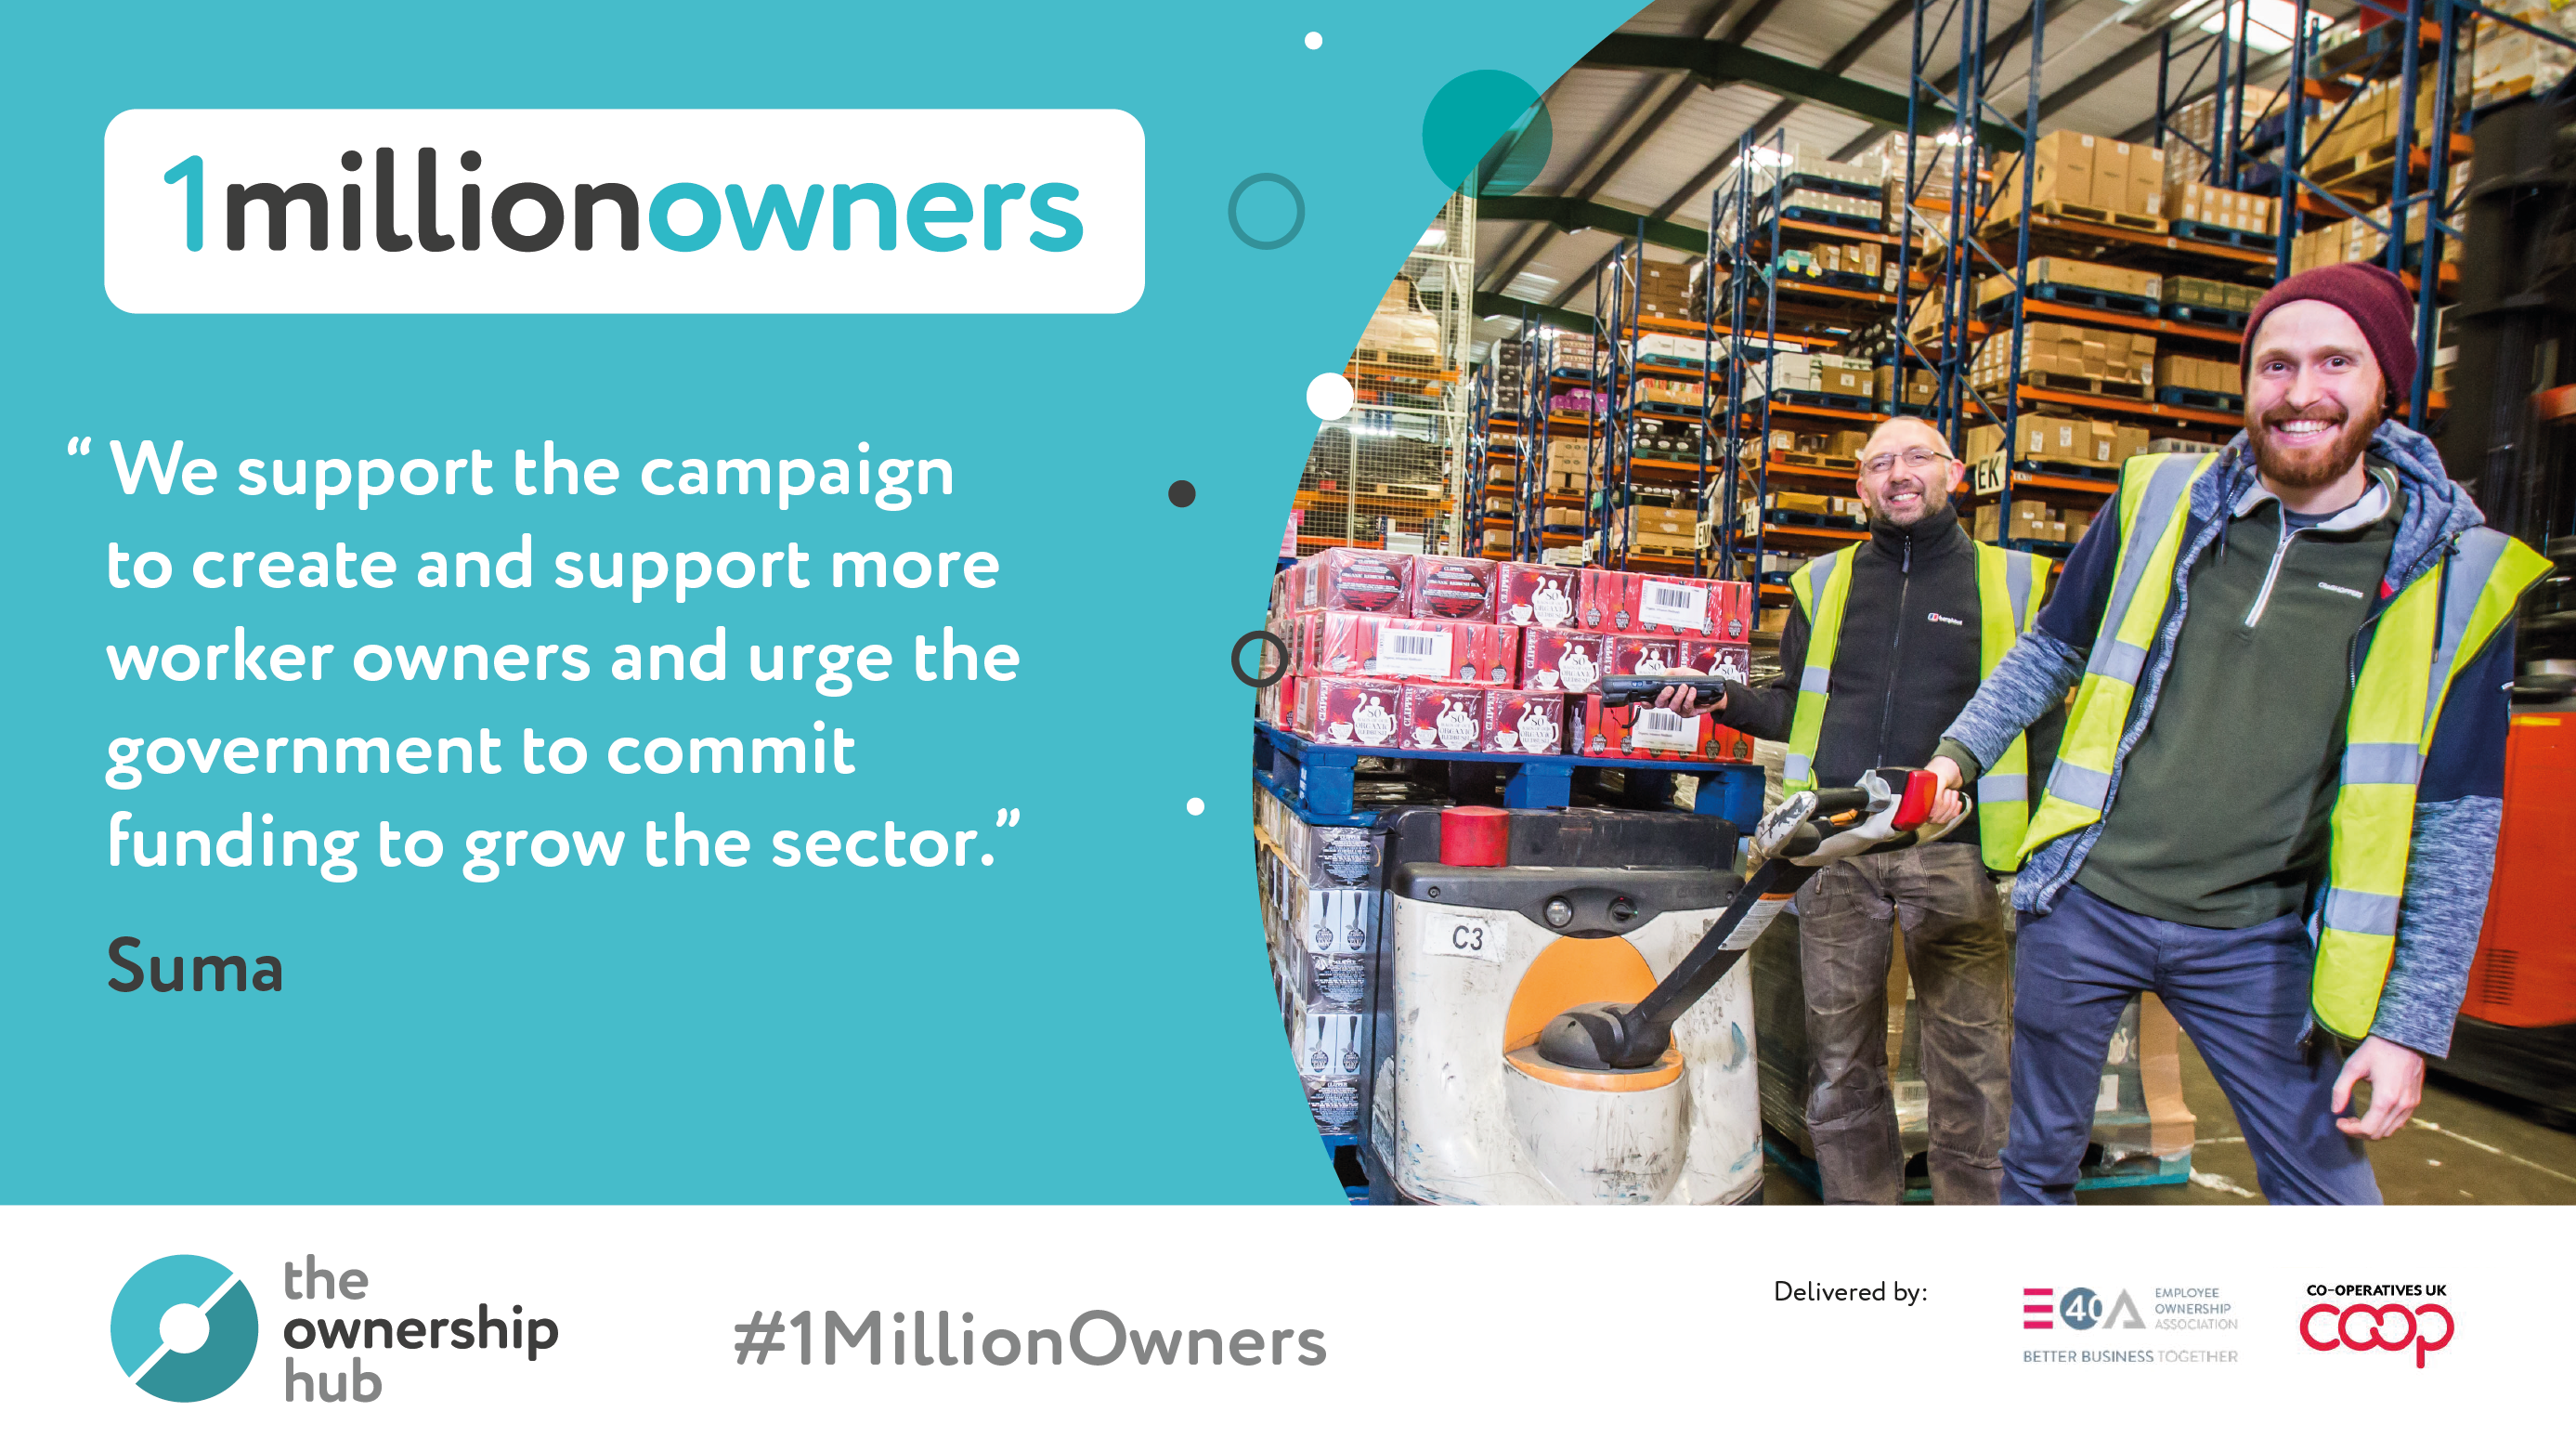 We support the campaign to create and support more worker owners and urge the government to commit funding to grow the sector